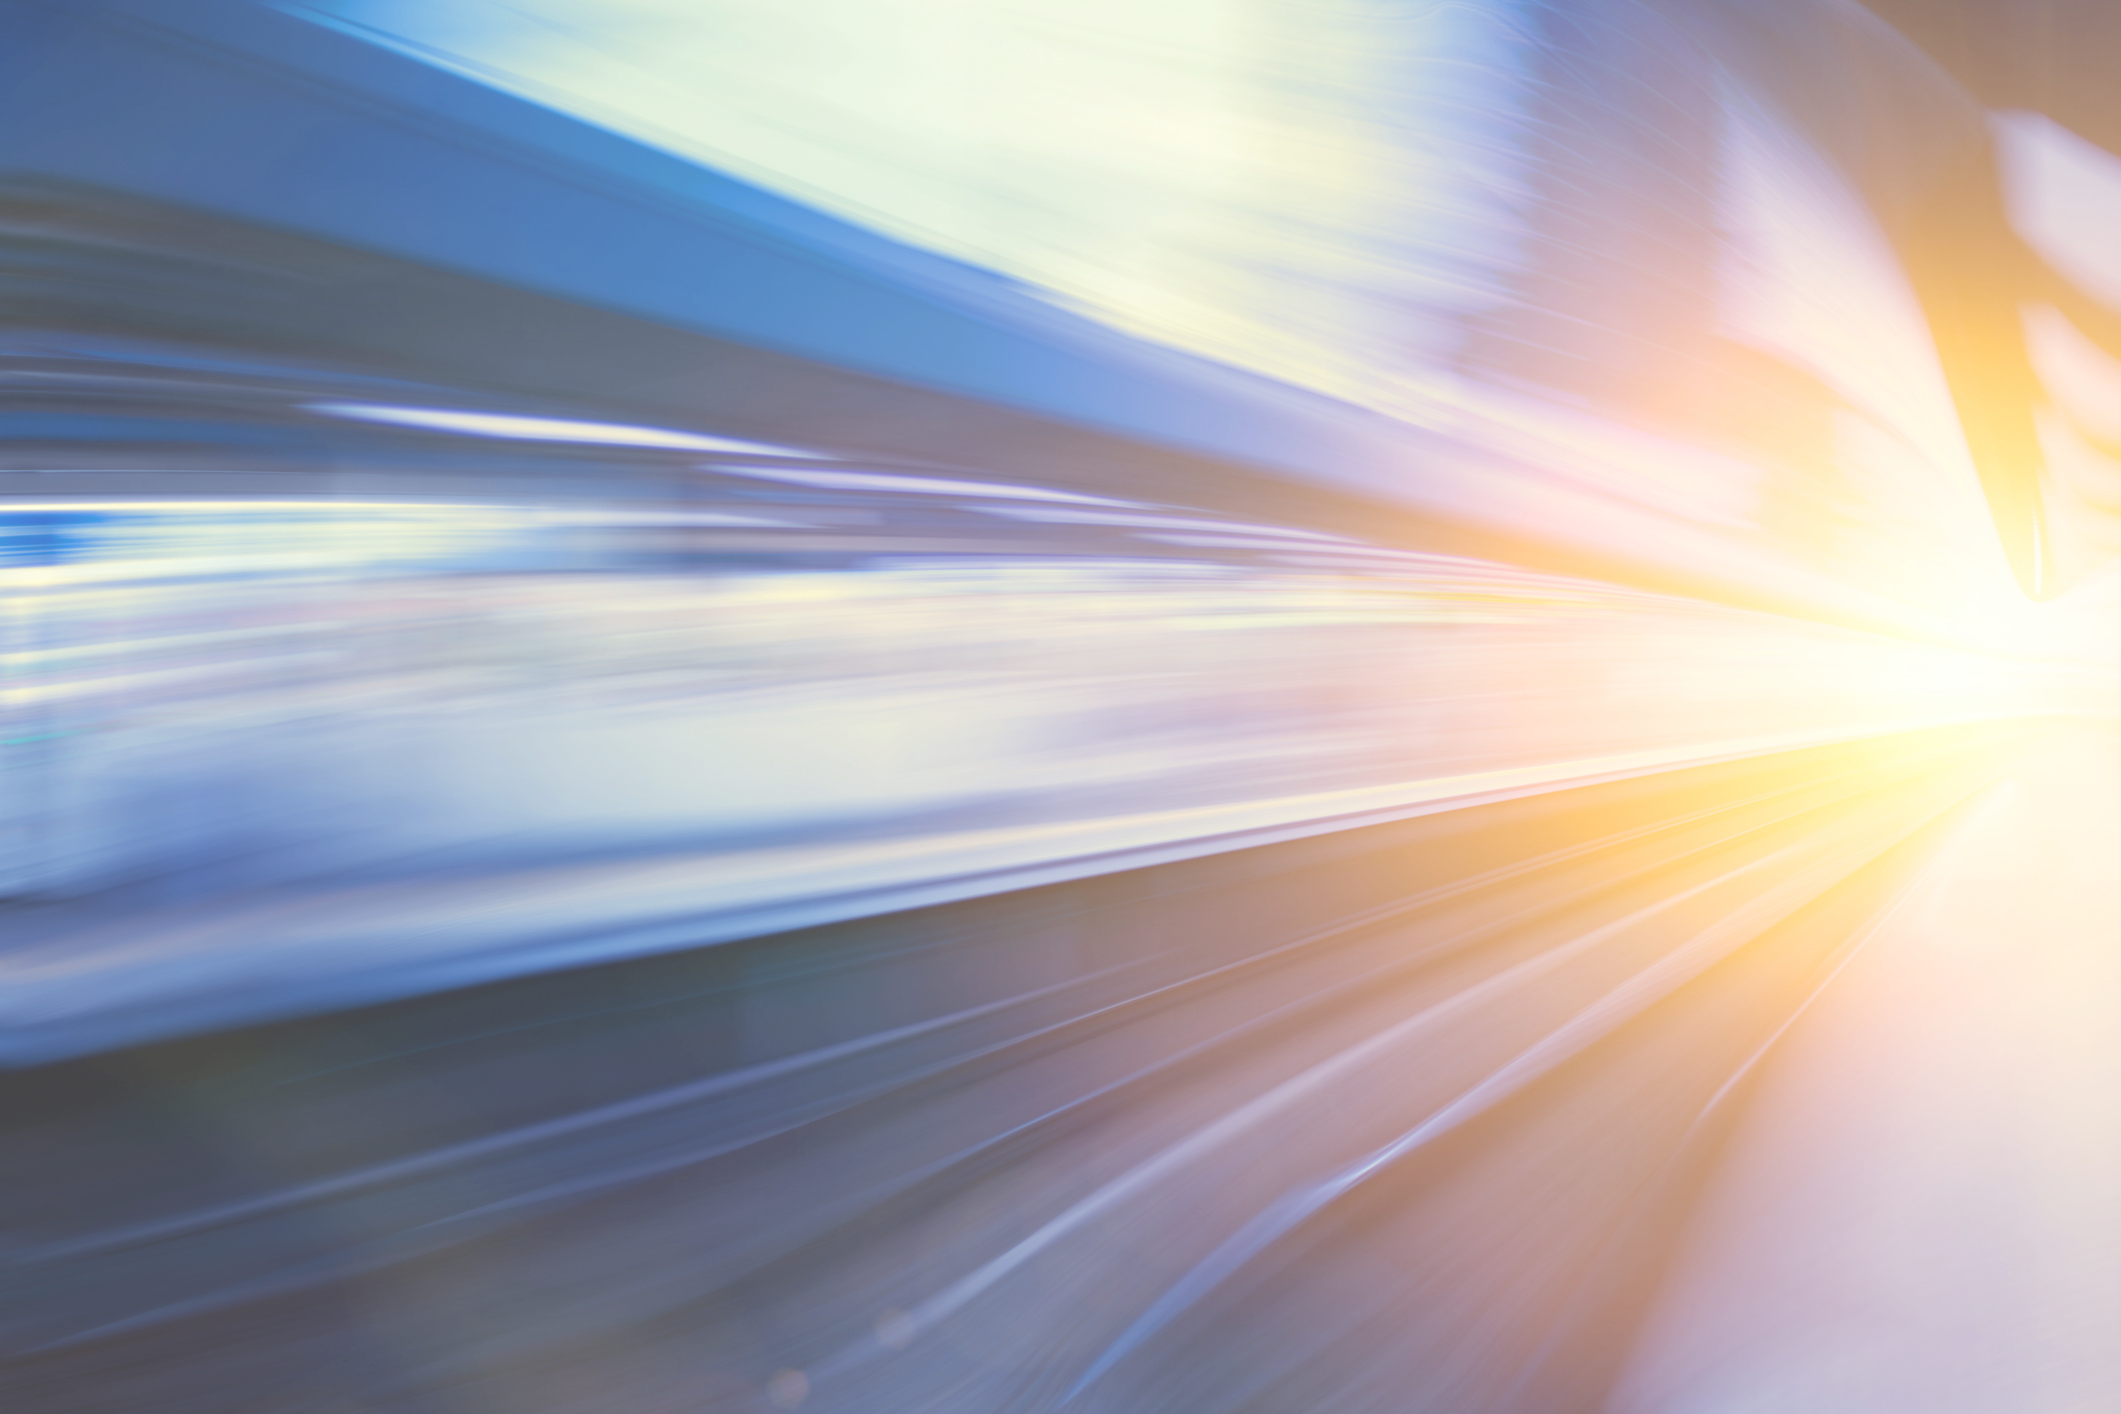 Acceleration-super-fast-speed-motion-of-train-station-for-backgr-636811242_2125x1416 white.png